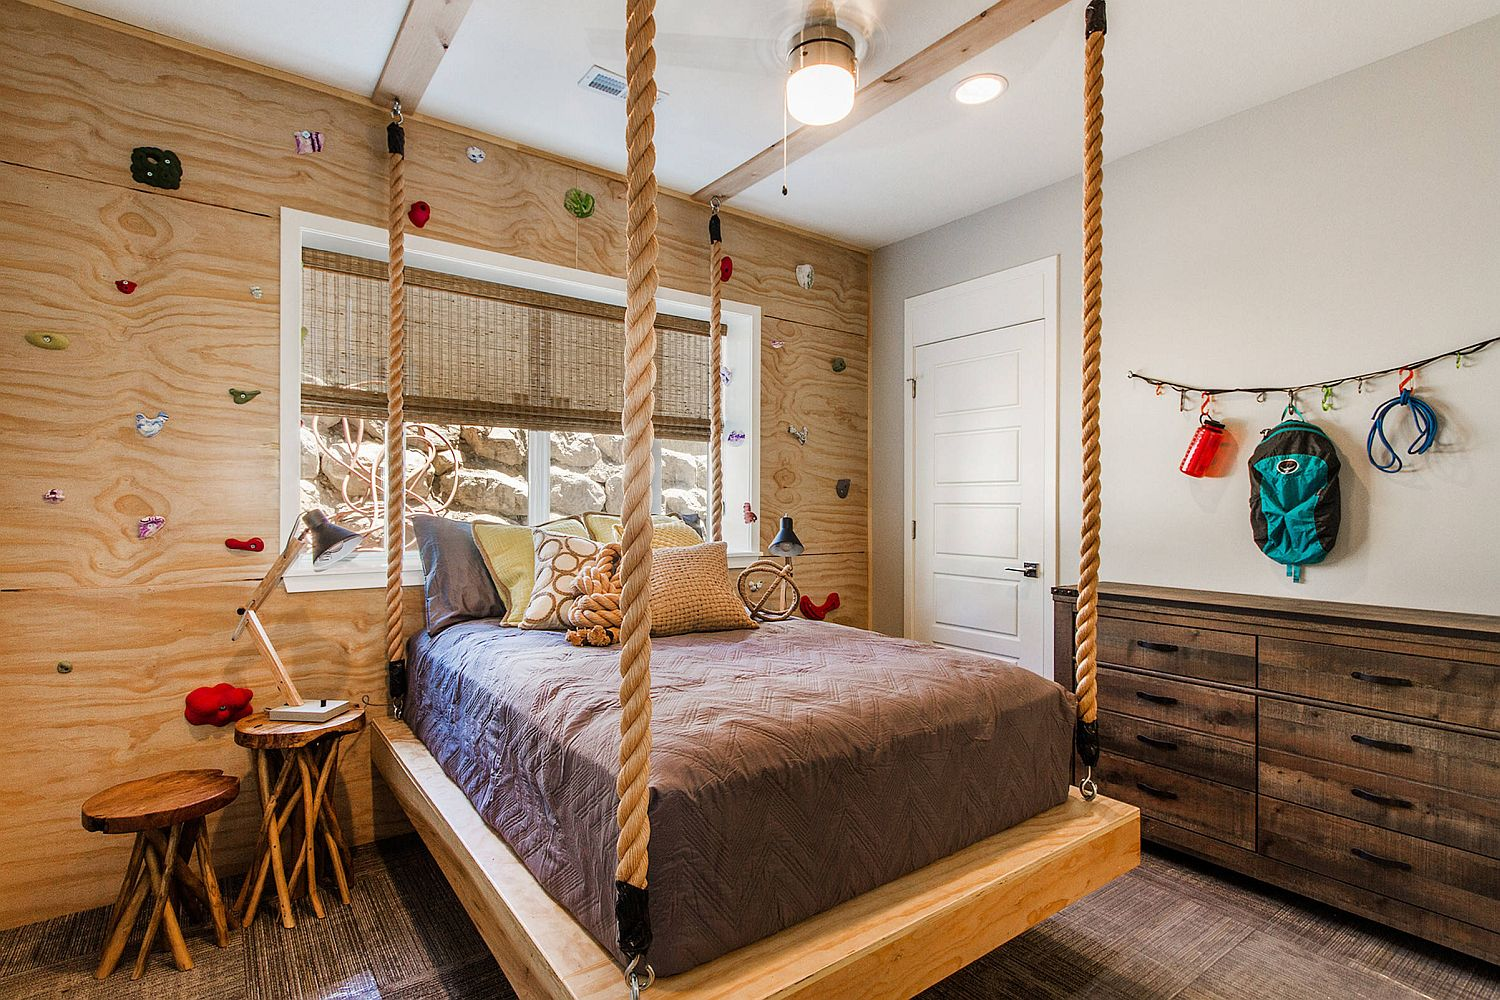 Hanging bed and custom climbing wall in wood for the small kids' room